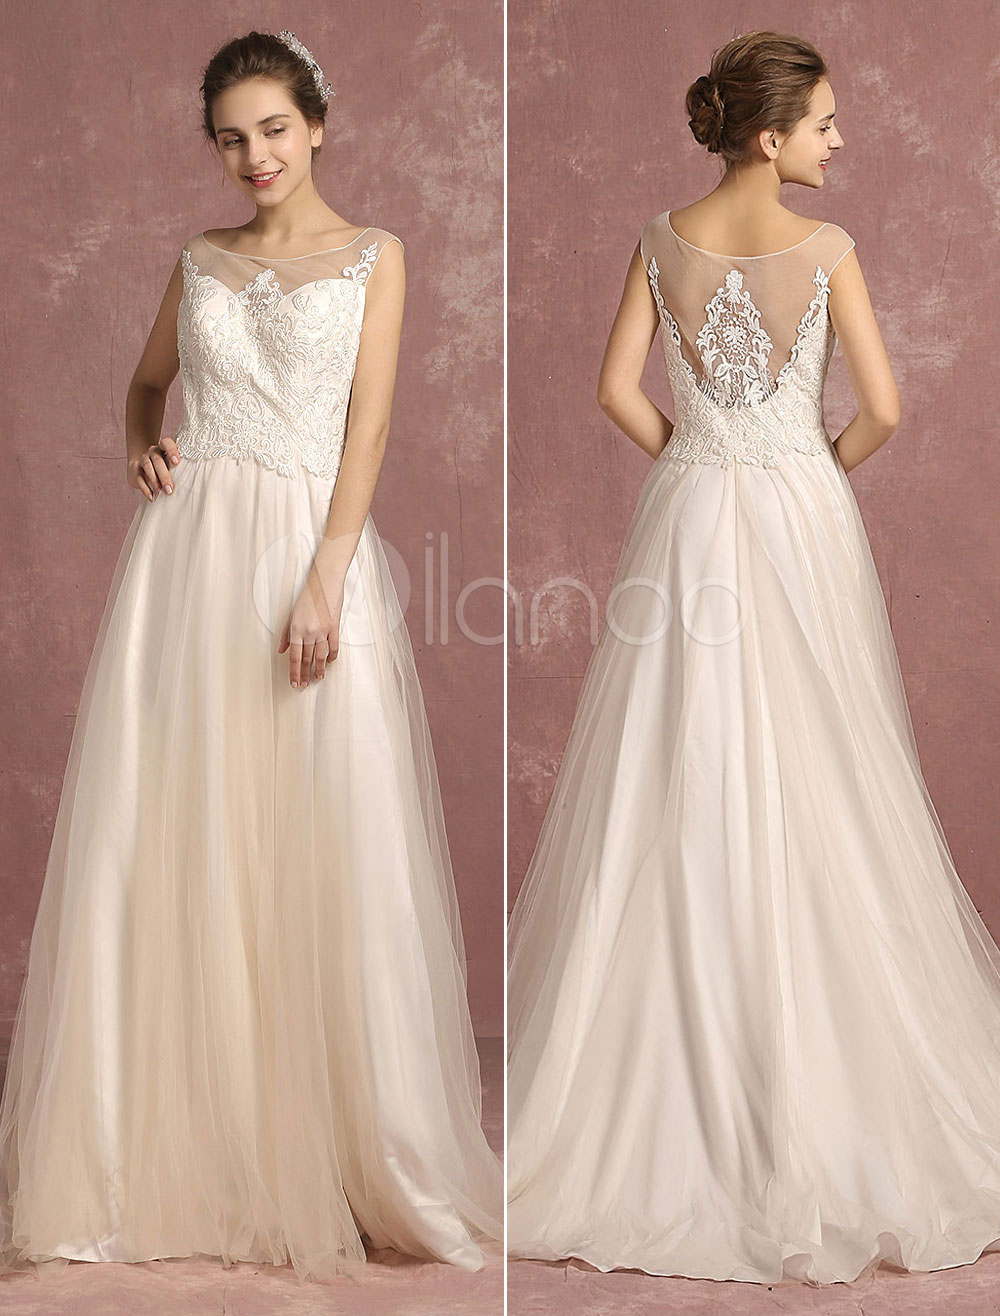 Buy Summer Wedding Dresses 2018 Tulle Illusion Lace Applique Bridal Gown Ivory Scoop Neck Sleeveless A Line Bridal Dress With Train for $151.19 in Milanoo store